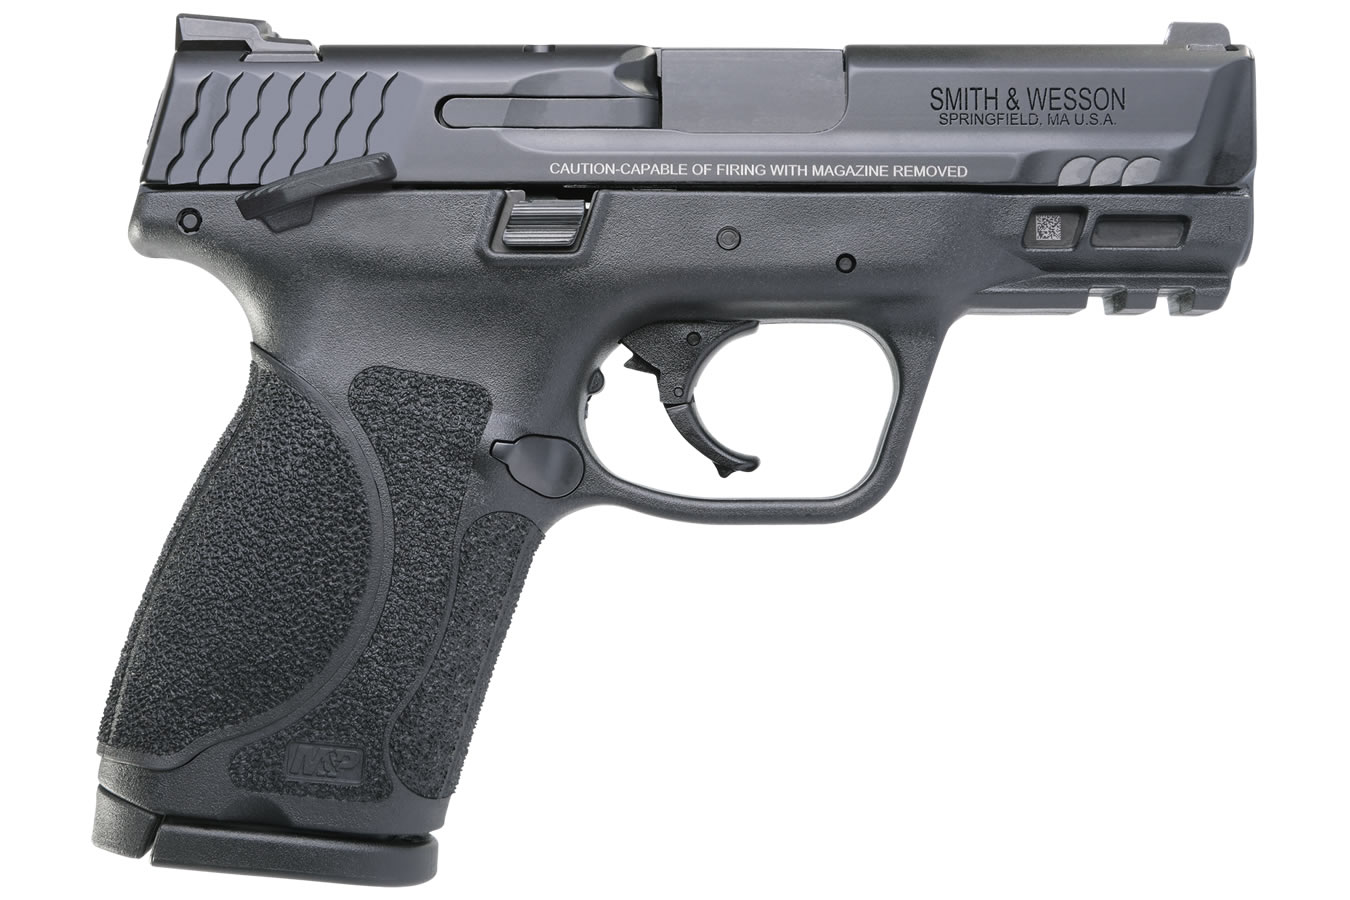 No. 16 Best Selling: SMITH AND WESSON MP9 M2.0 COMPACT 9MM 3.6 THUMB SAFETY